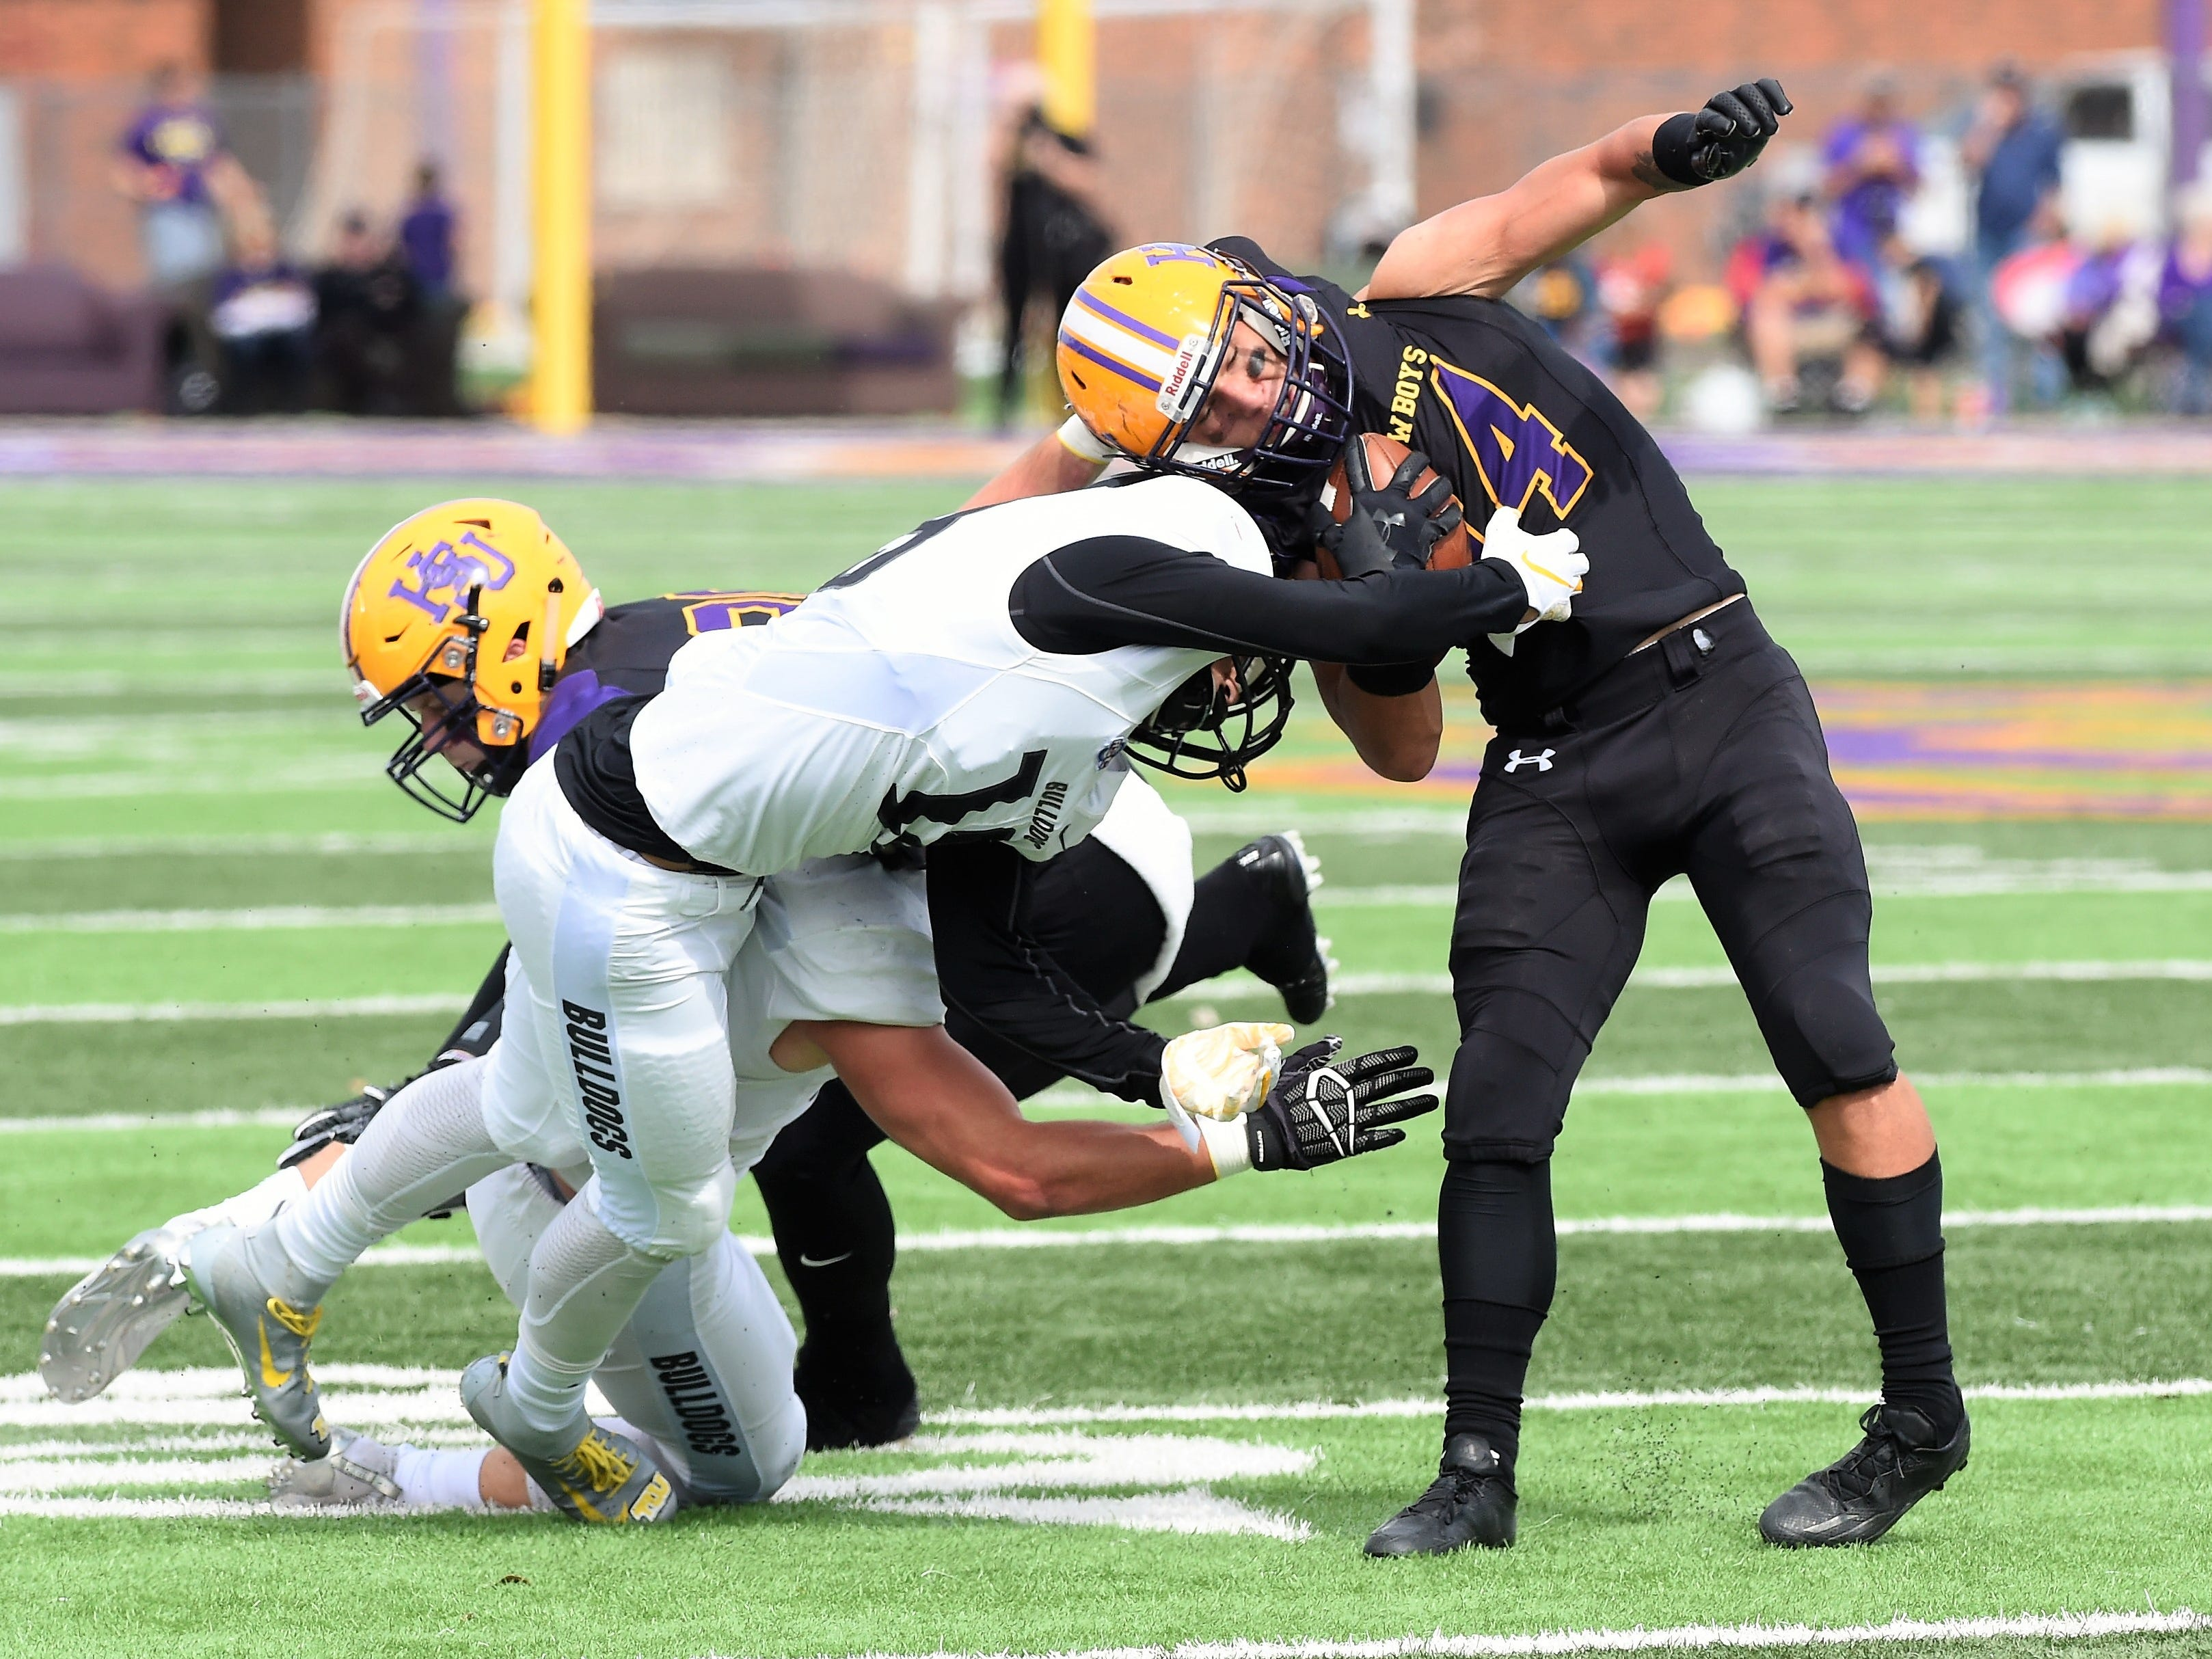 Hardin-Simmons slotback Bryson Hammonds (14) slips away from a tackle for more yards against Texas Lutheran at Shelton Stadium on Saturday, Oct. 20, 2018.